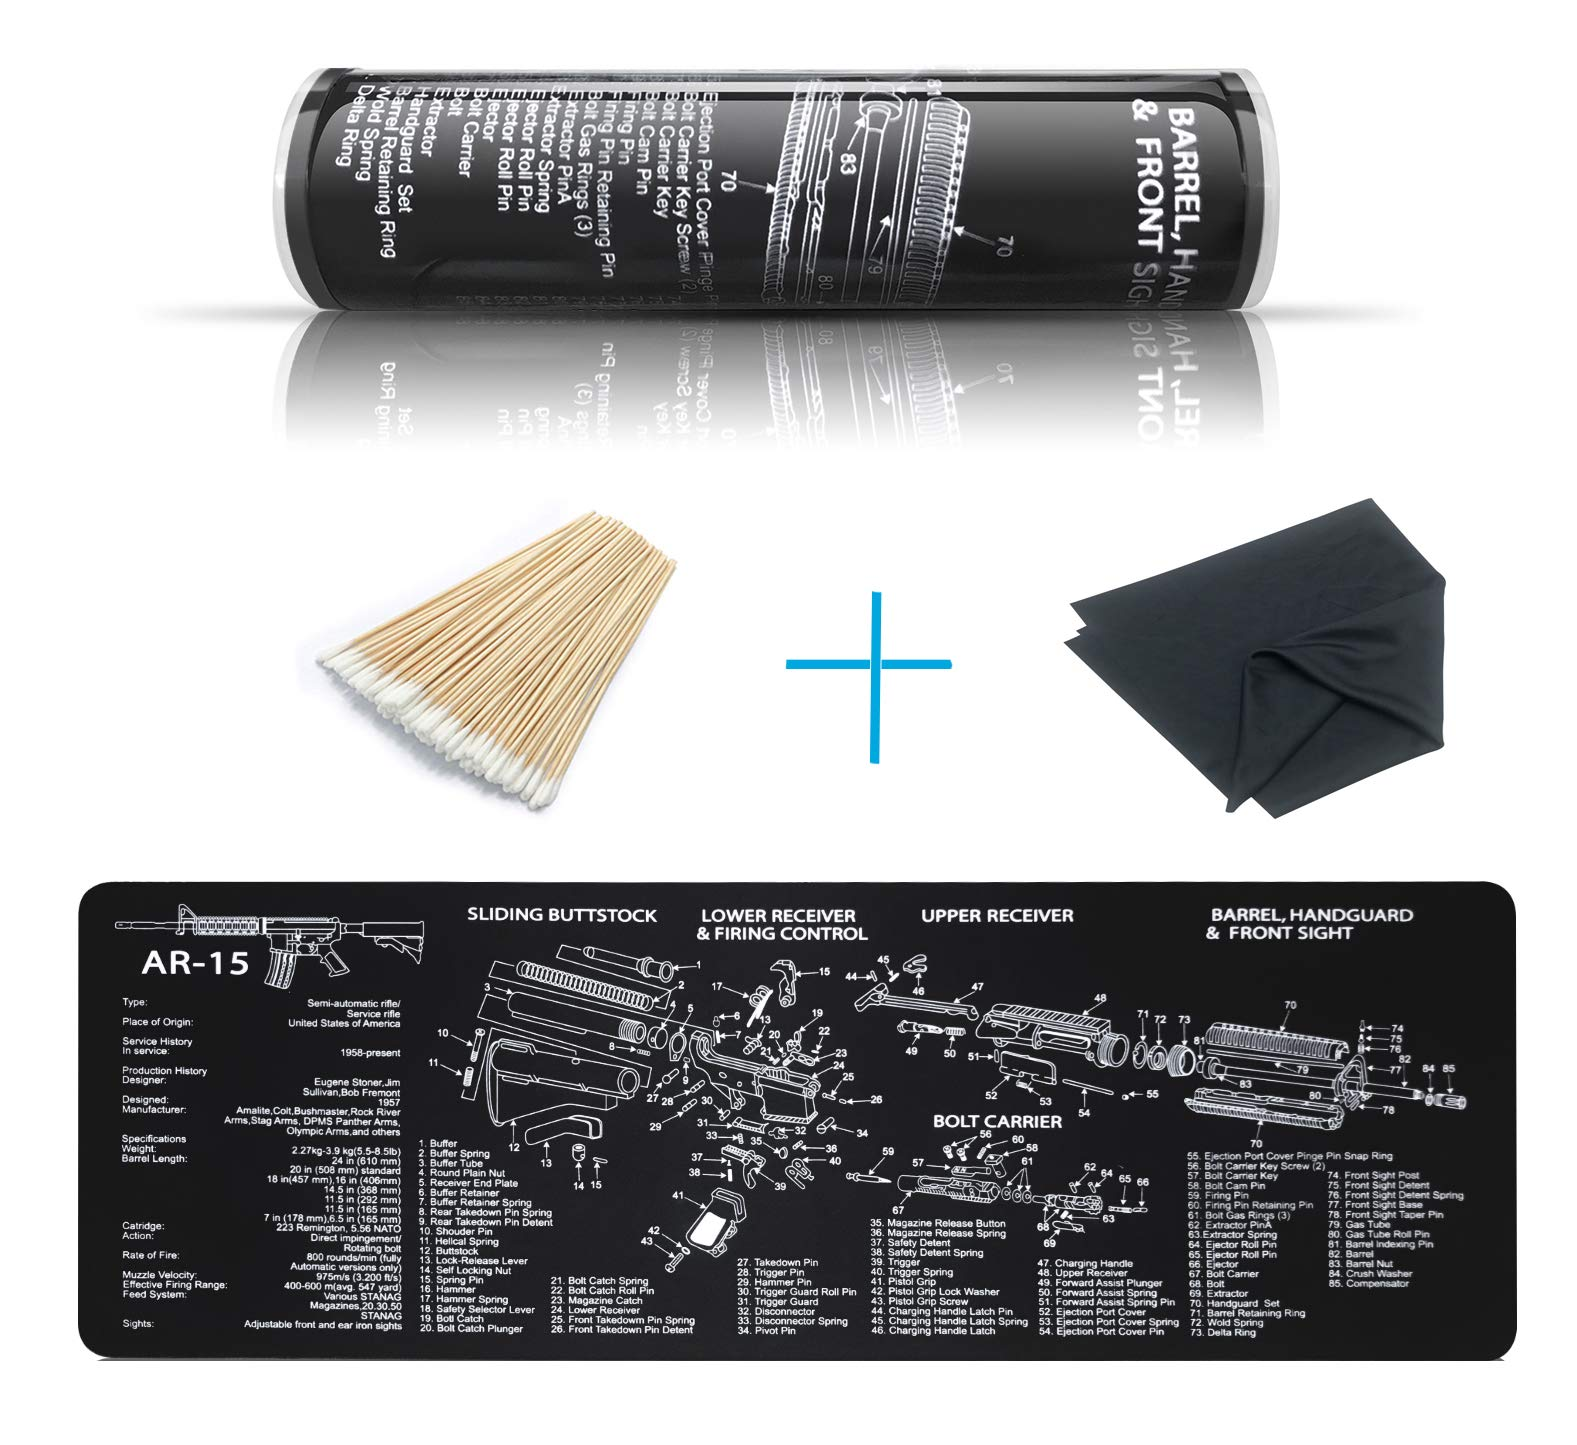 YFEEX Gun Cleaning Mat Pad (36.2'' X 12.2'')-Ar 15 Gun Cleaning Mat with Cotton Swabs & Cleaning Cloth | 3.5 mm | Long, Black Gun Cleaning Pad for Most Rifles